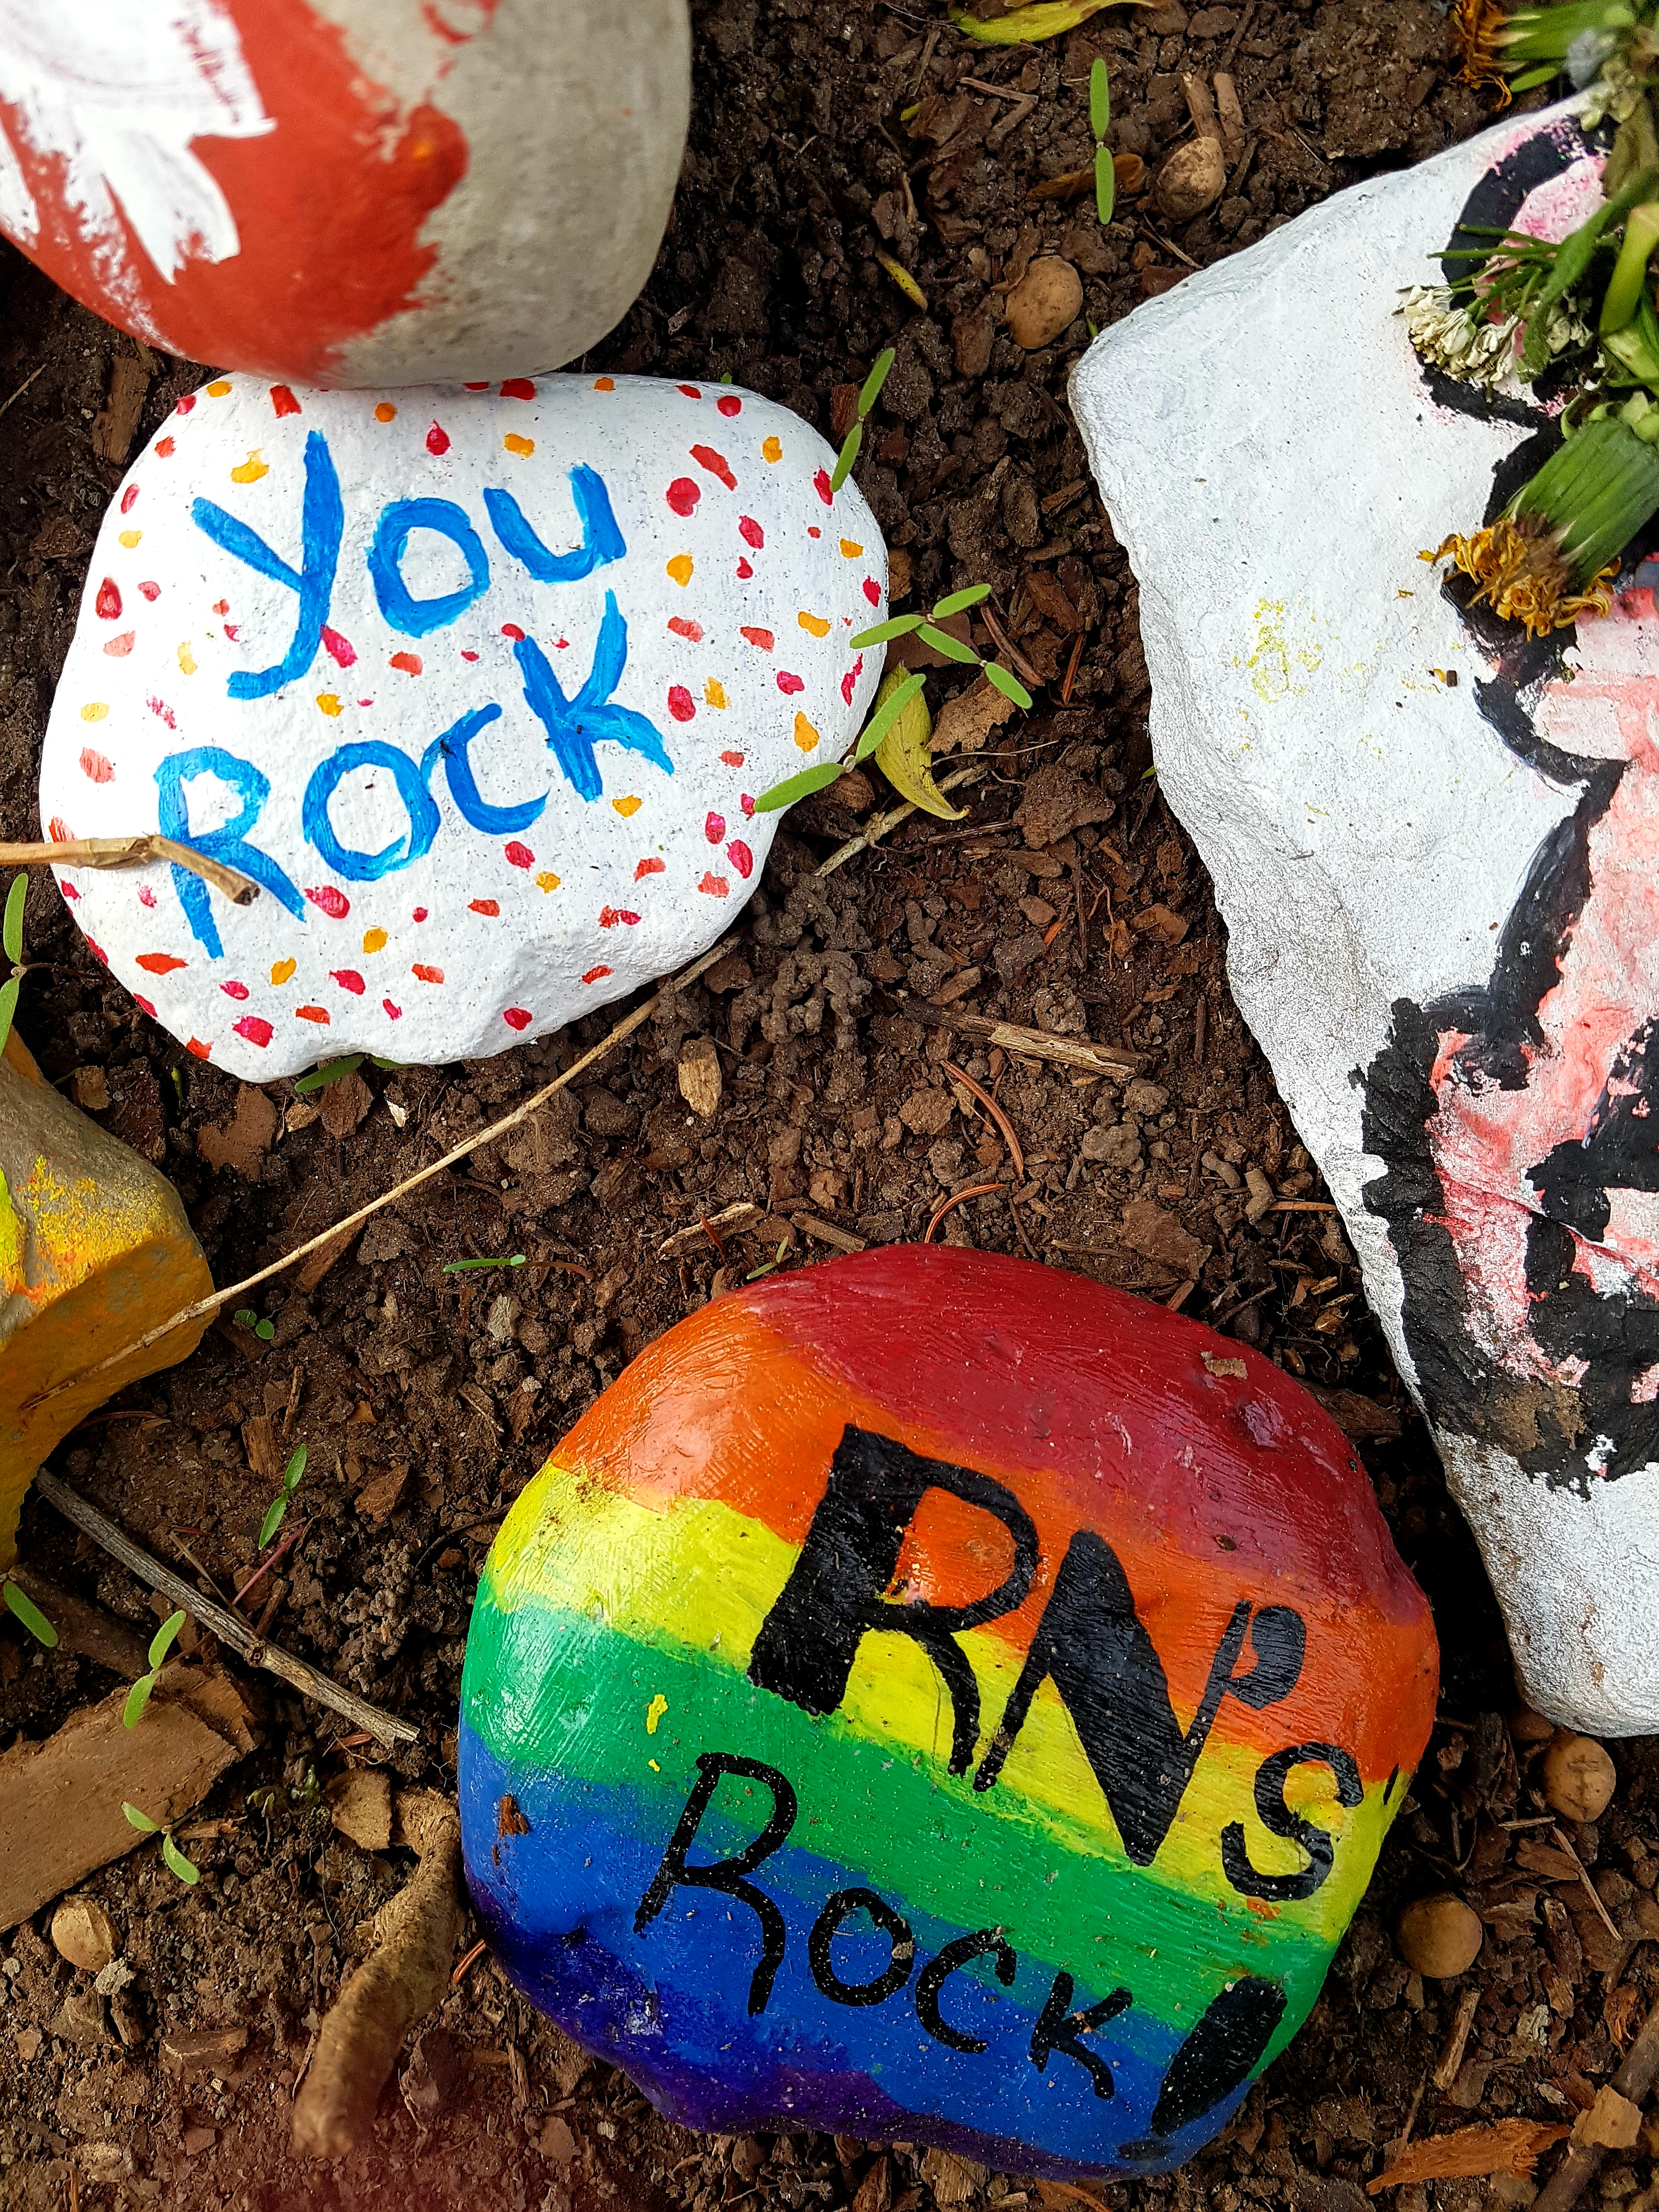 rocks painted with messages